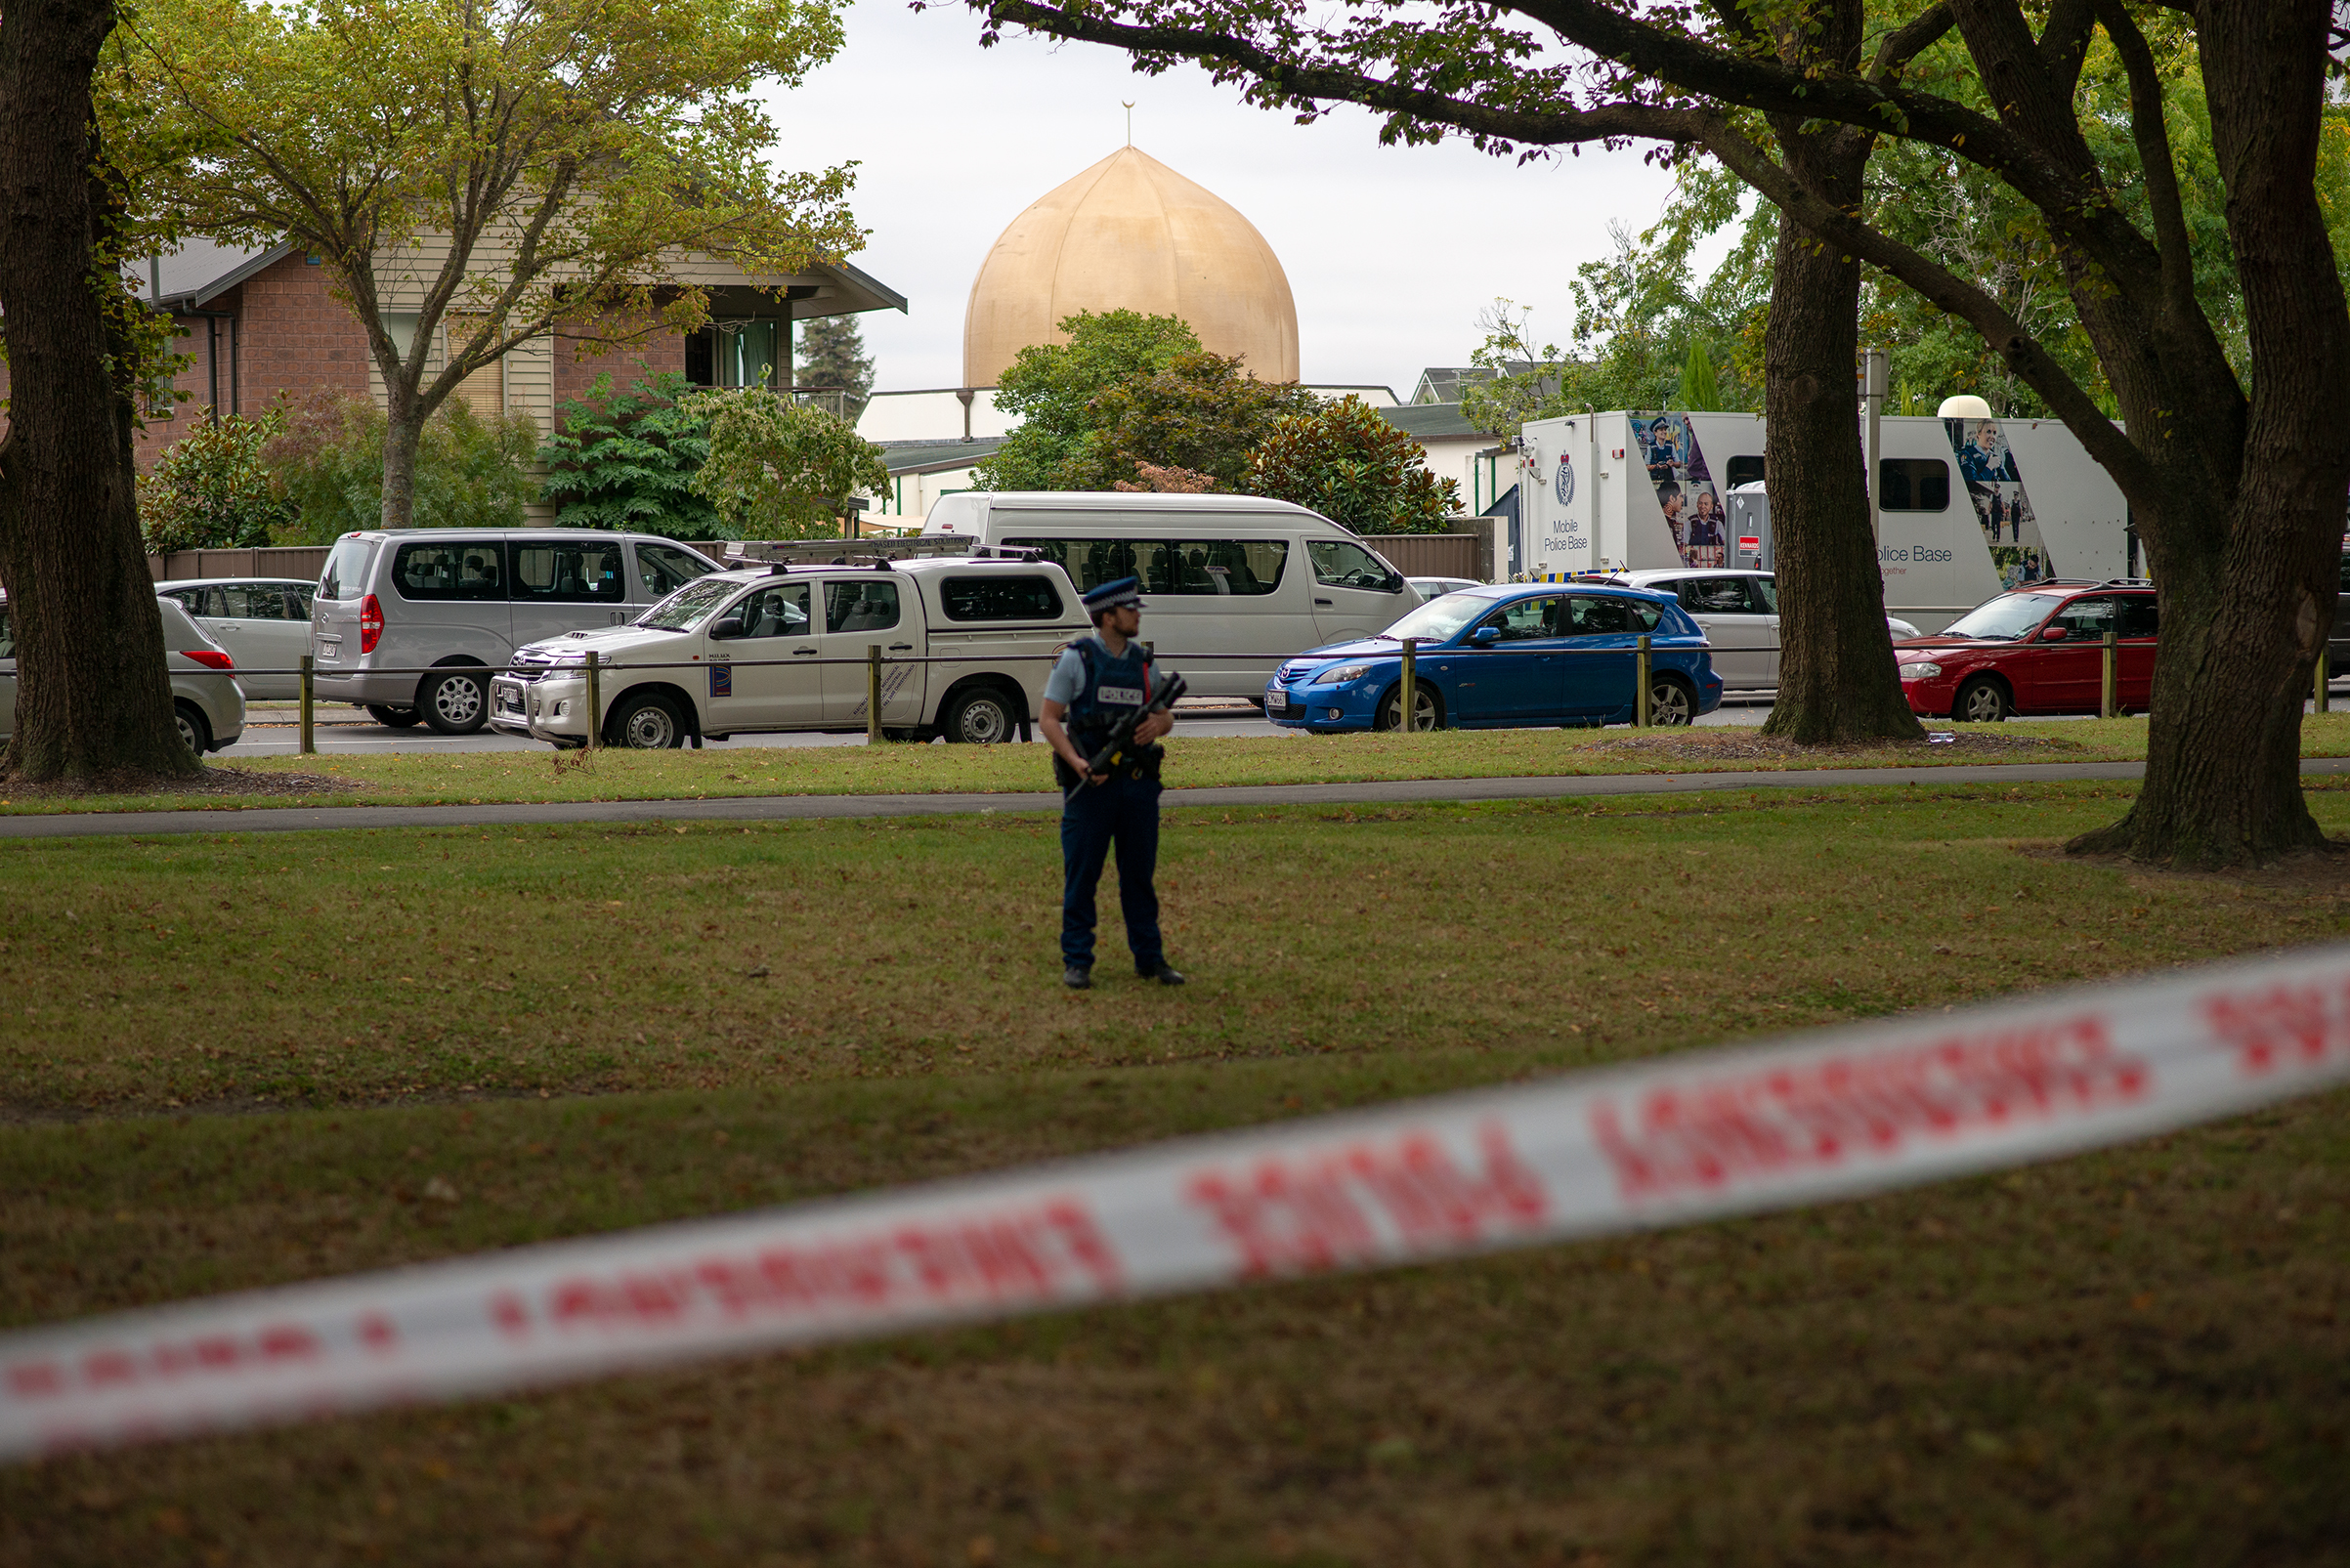 The golden dome of the al-Noor mosque in Christchurch, where 42 worshippers were killed on March 15